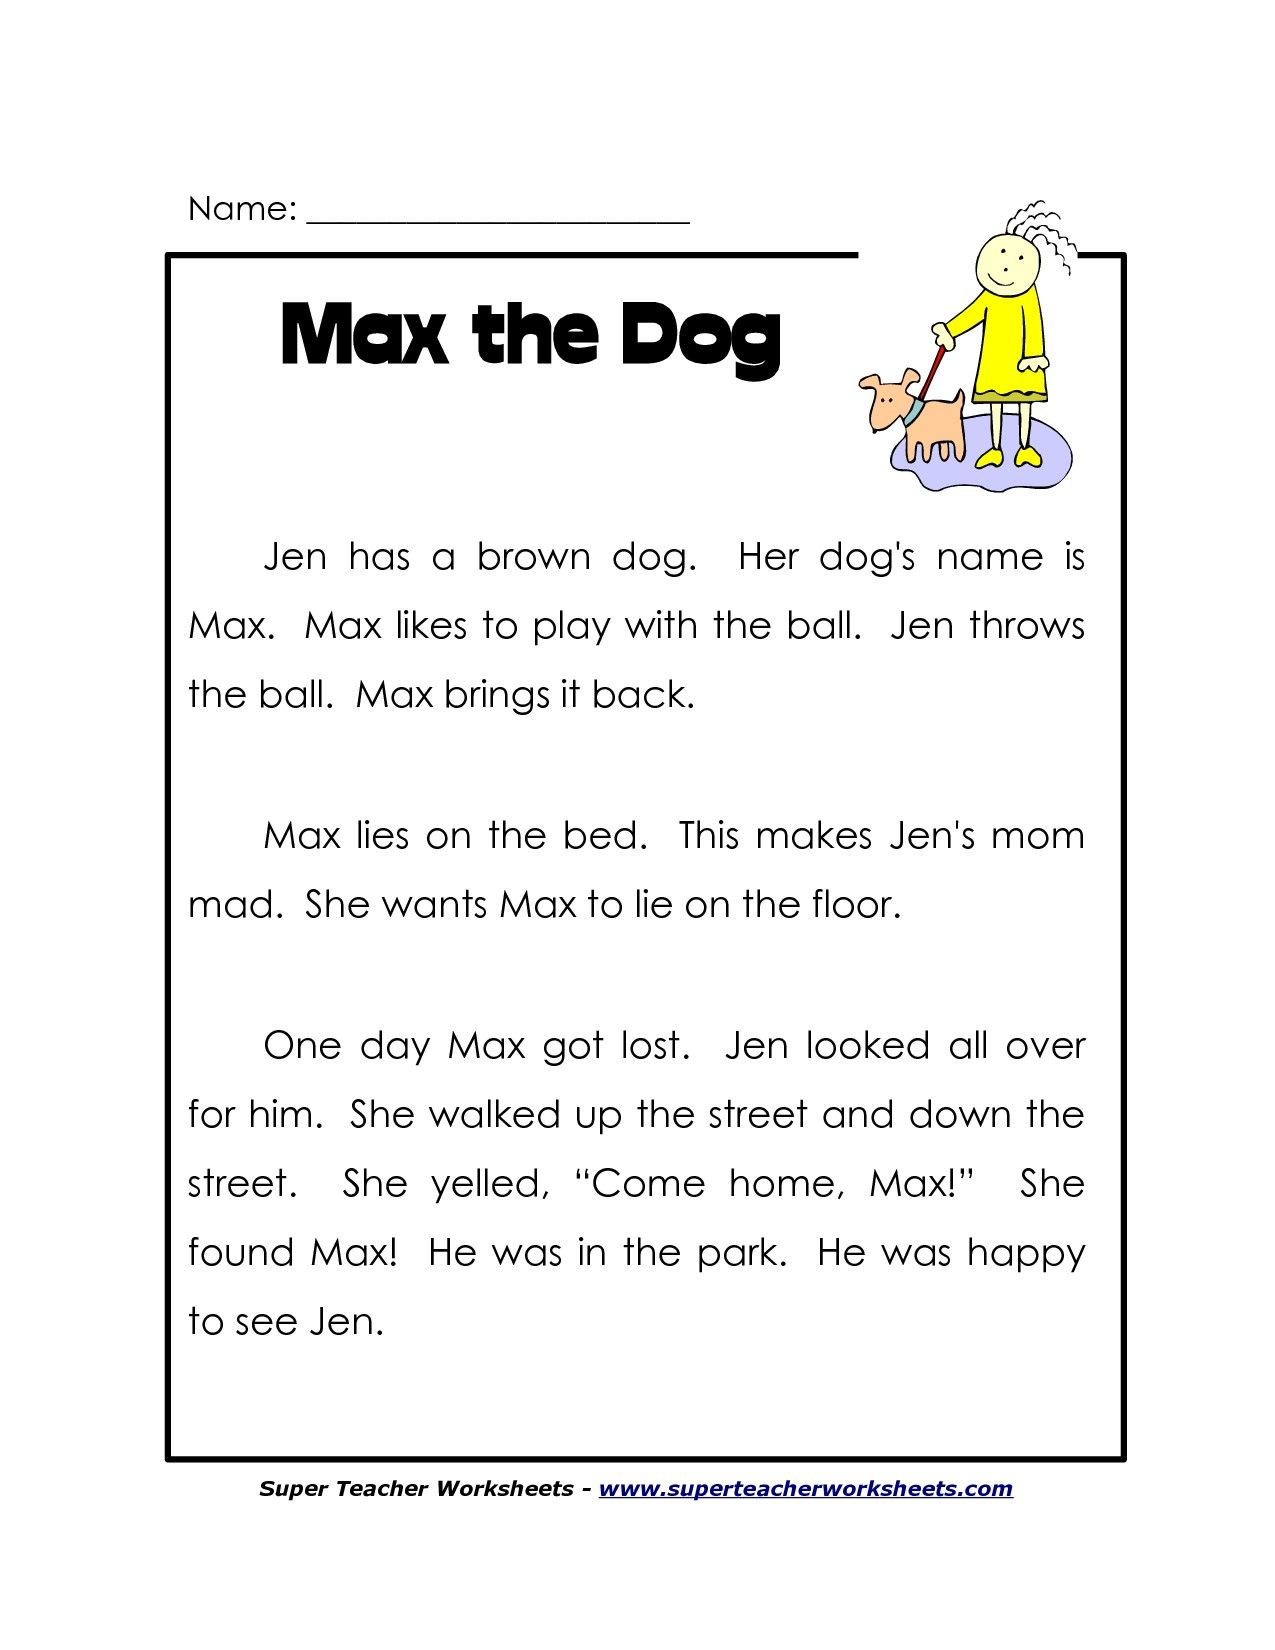 Worksheets Free Reading Comprehension Worksheets For 1st Grade 1st grade reading worksheets free lots more on superteacherworksheets com